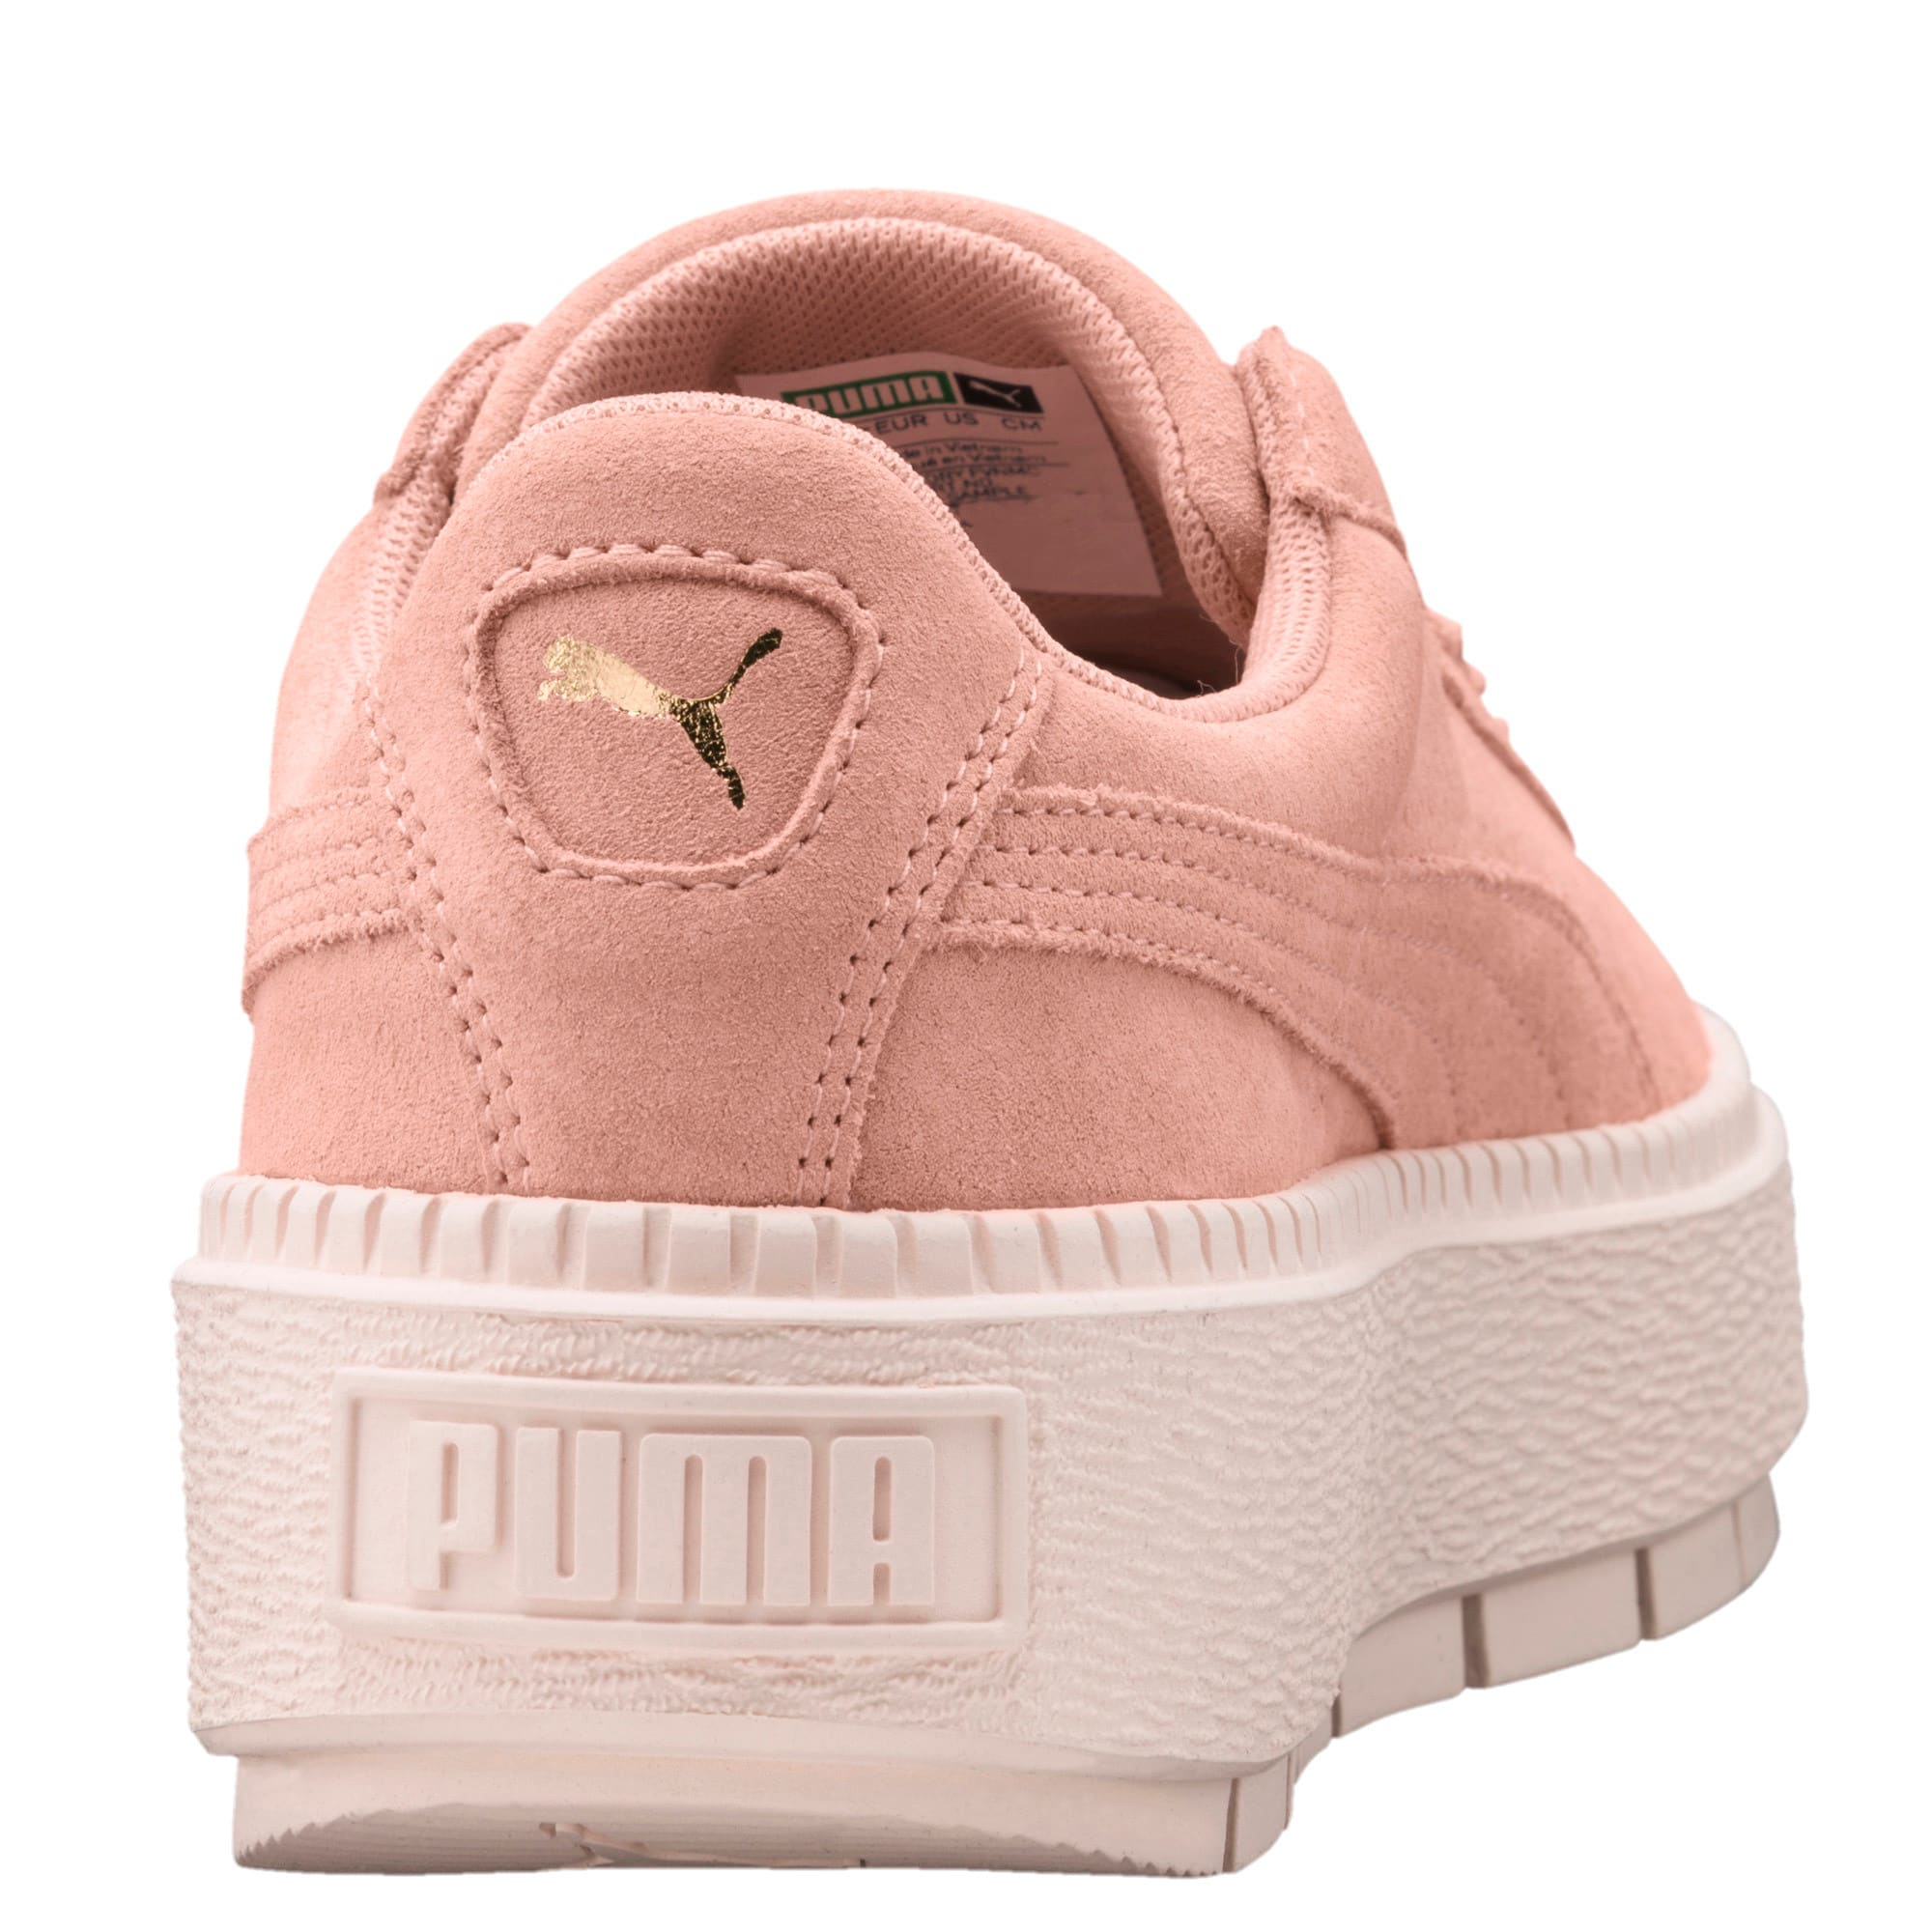 Thumbnail 5 of Platform Trace Women's Trainers, Peach Beige-Pearl, medium-IND